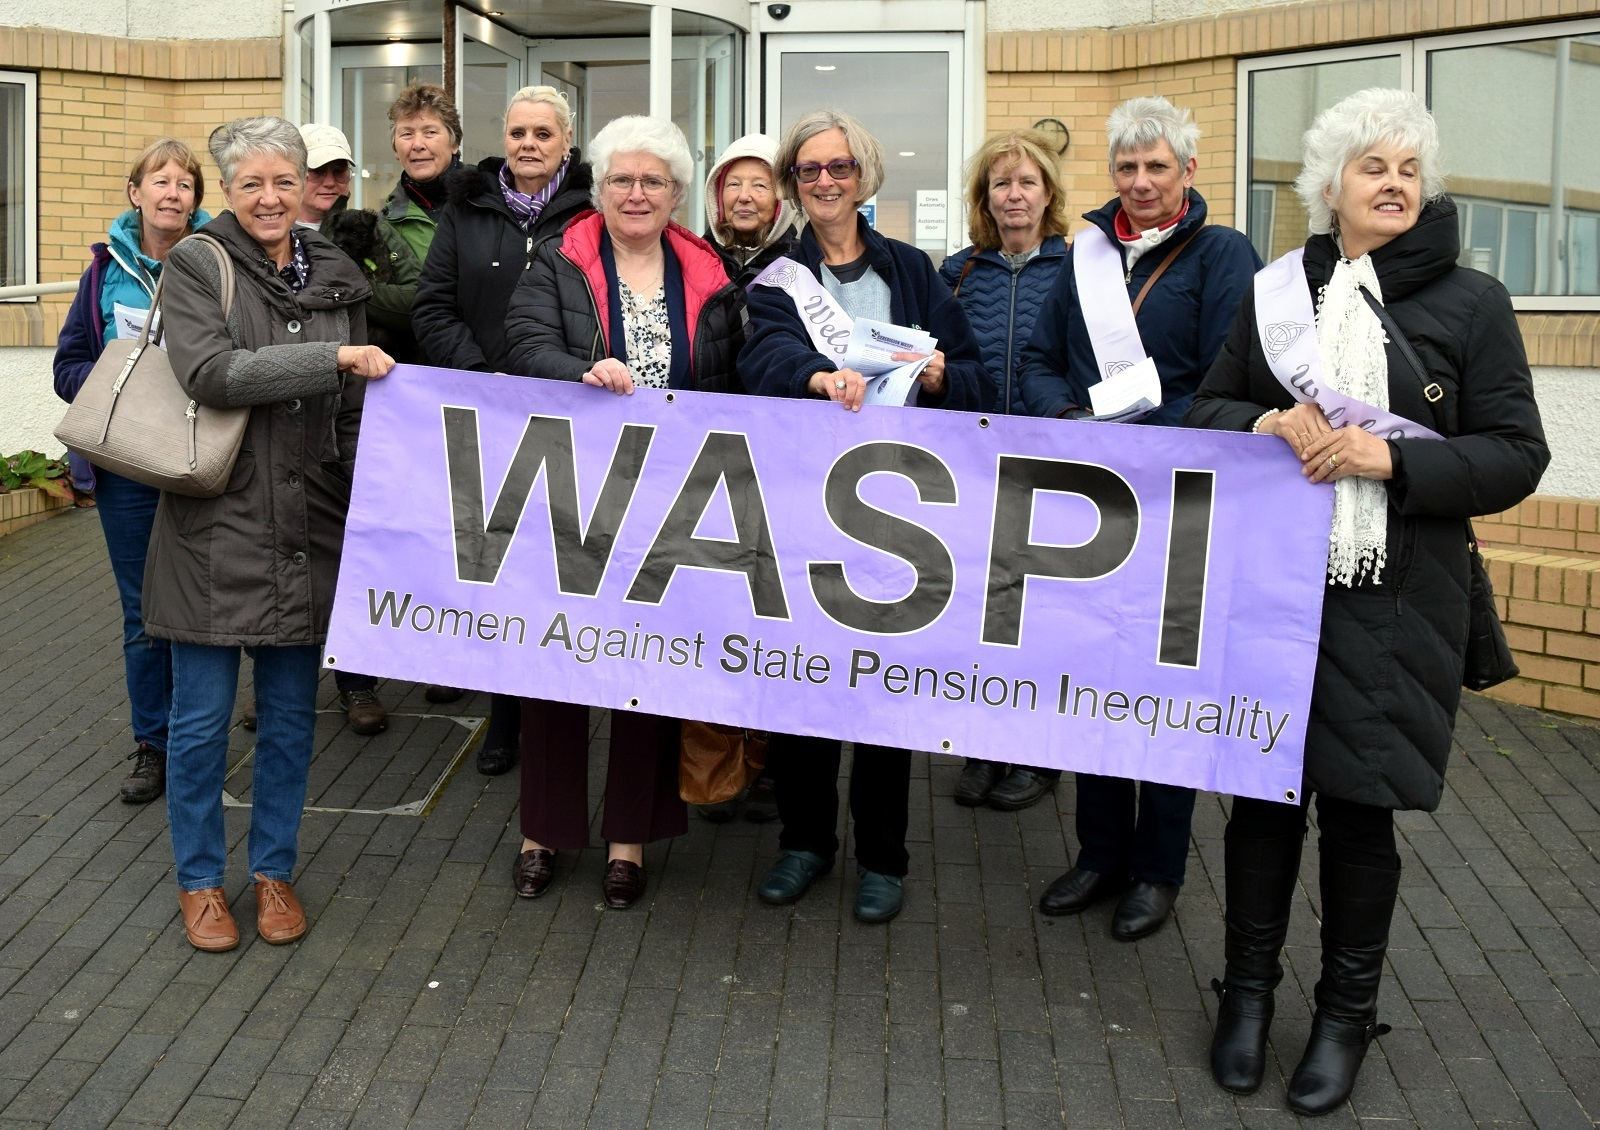 Women from Ceredigion WASPI outside the council meeting where the resolution to support the WASPI campaign was unanimously passed